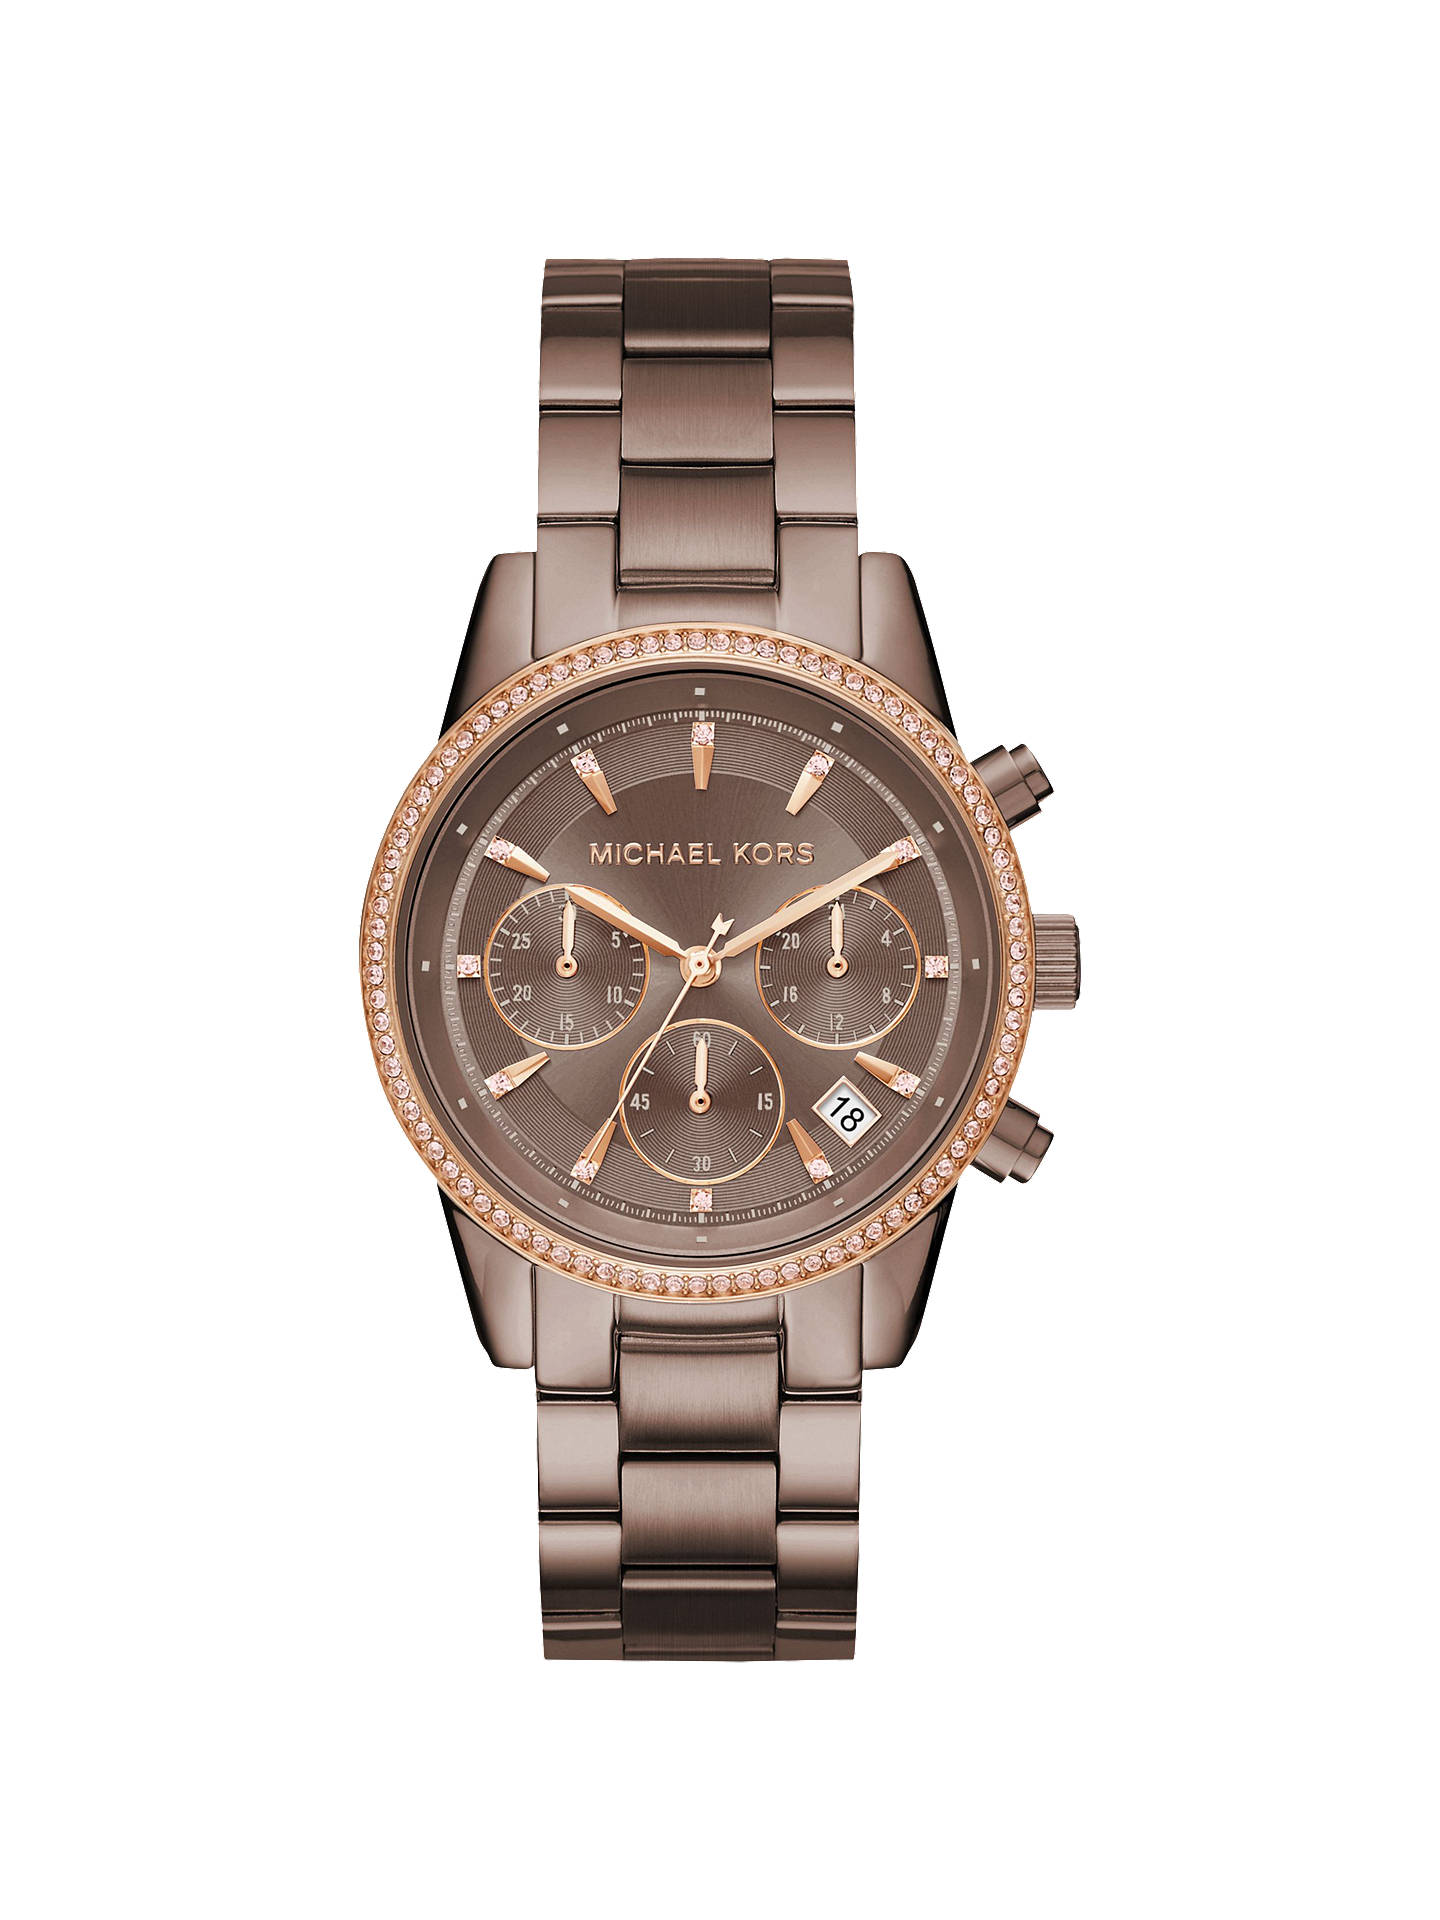 76e1e2bd44db Buy Michael Kors MK6529 Women s Ritz Chronograph Date Bracelet Strap Watch